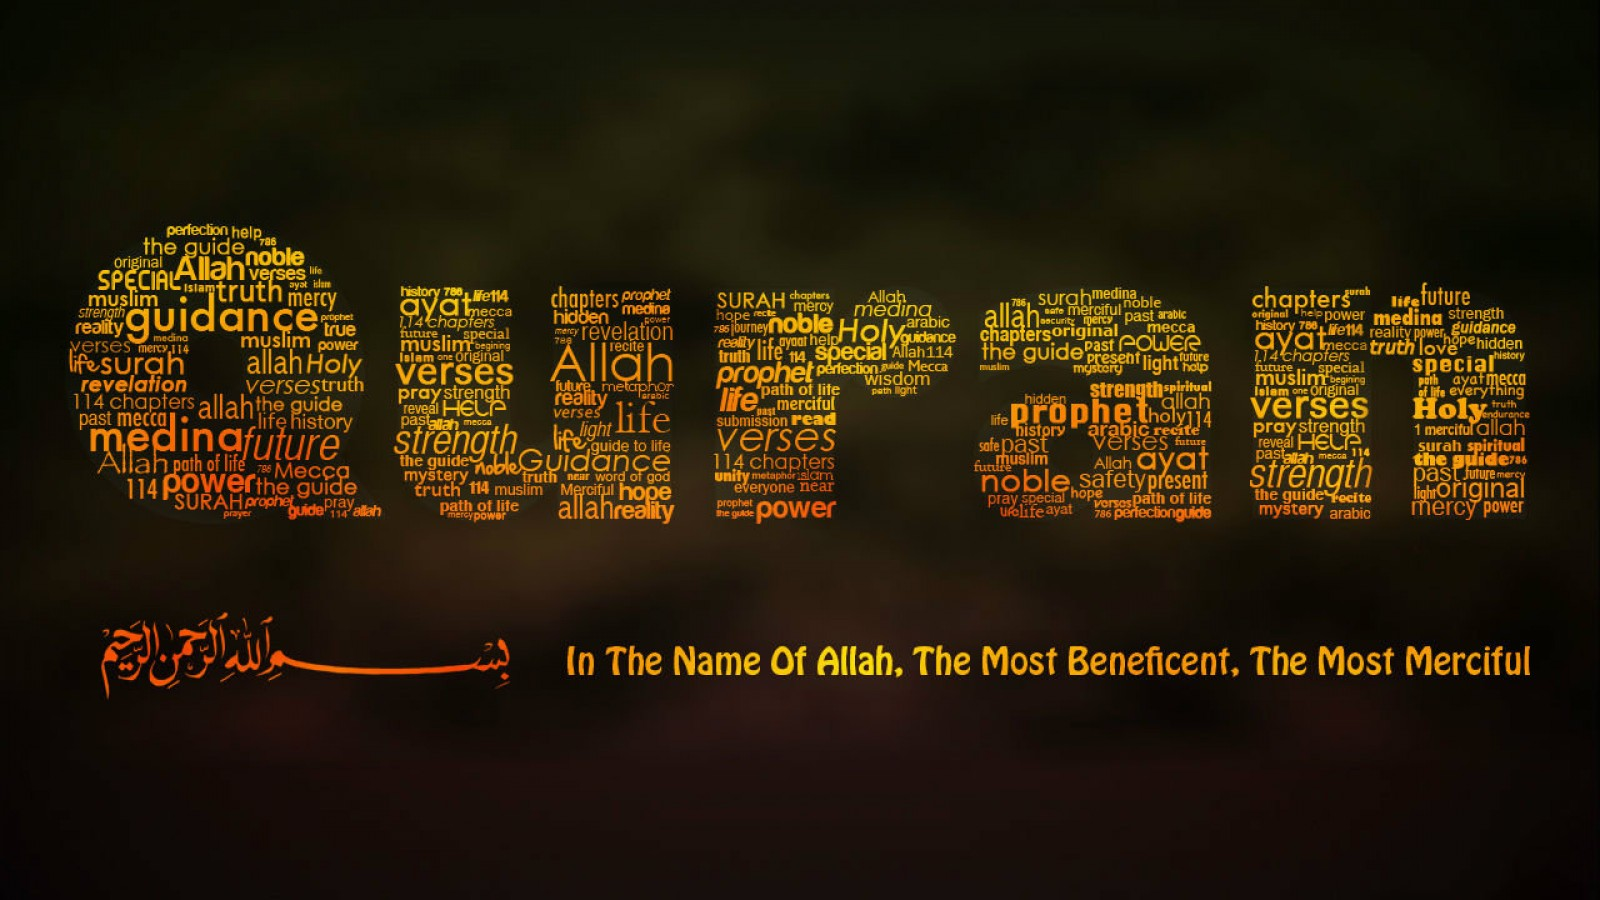 Hd wallpaper quran - Beautiful Quotes From The Quran